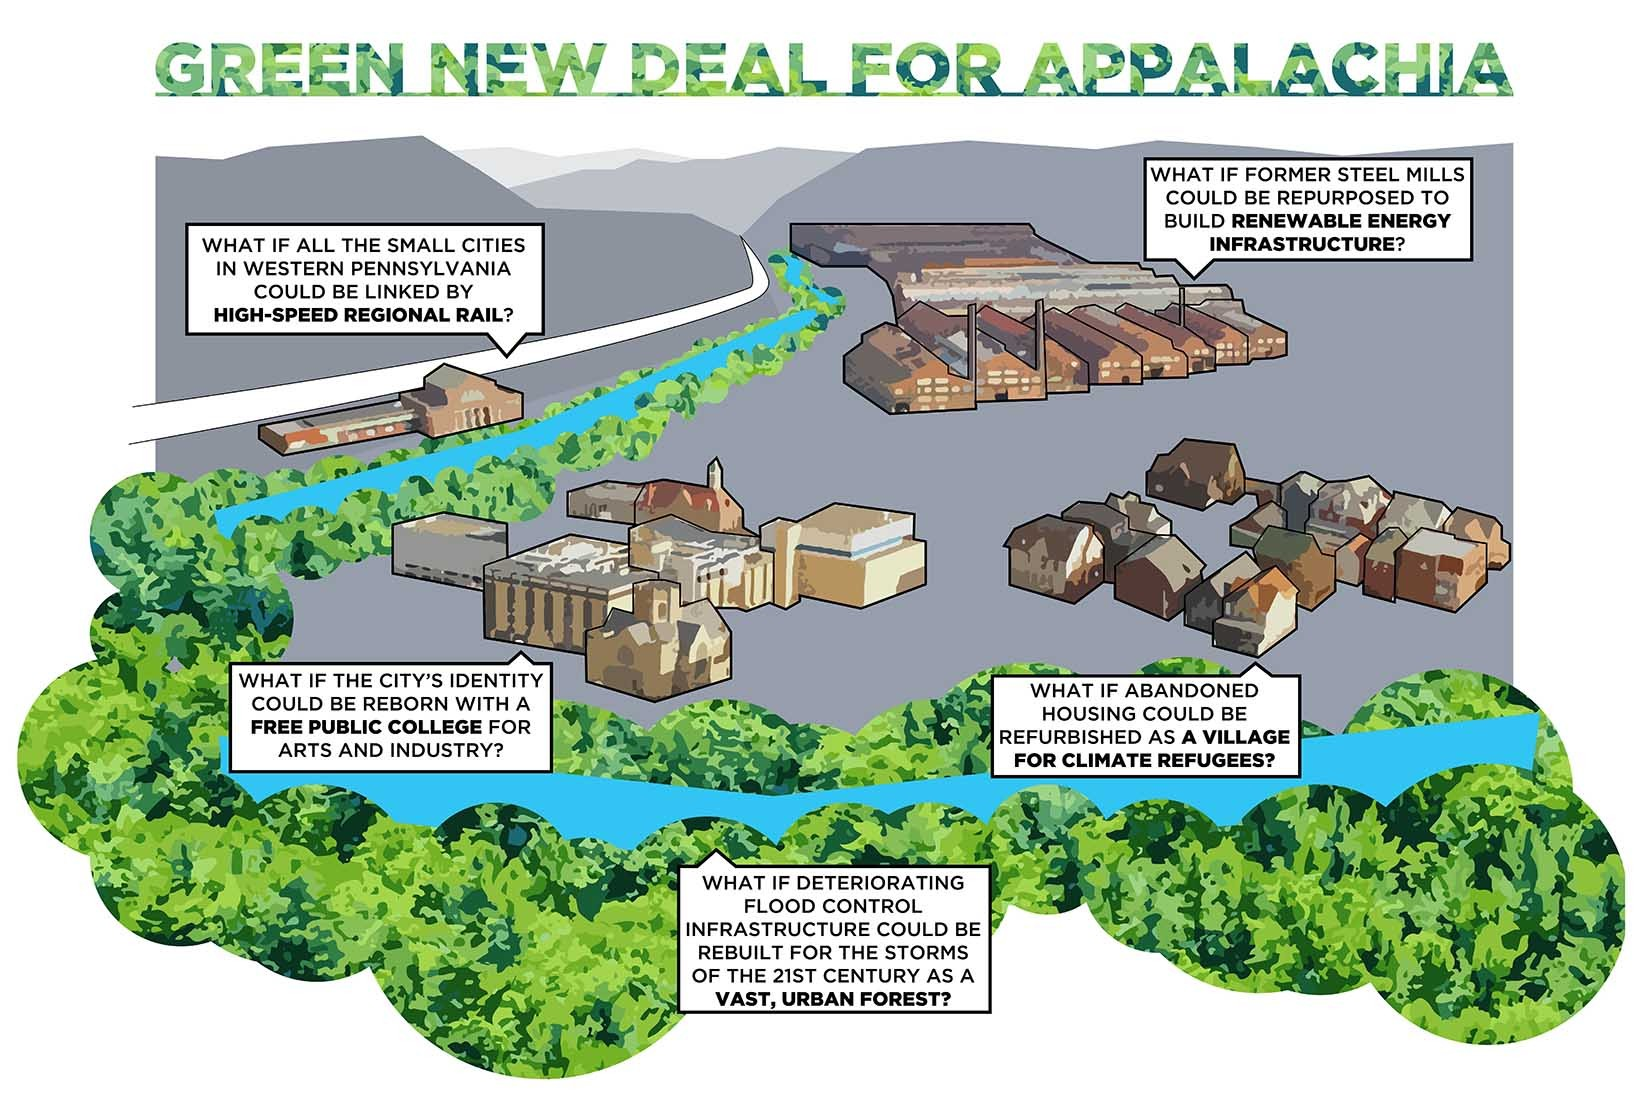 What a Green New Deal could look like in Appalachia